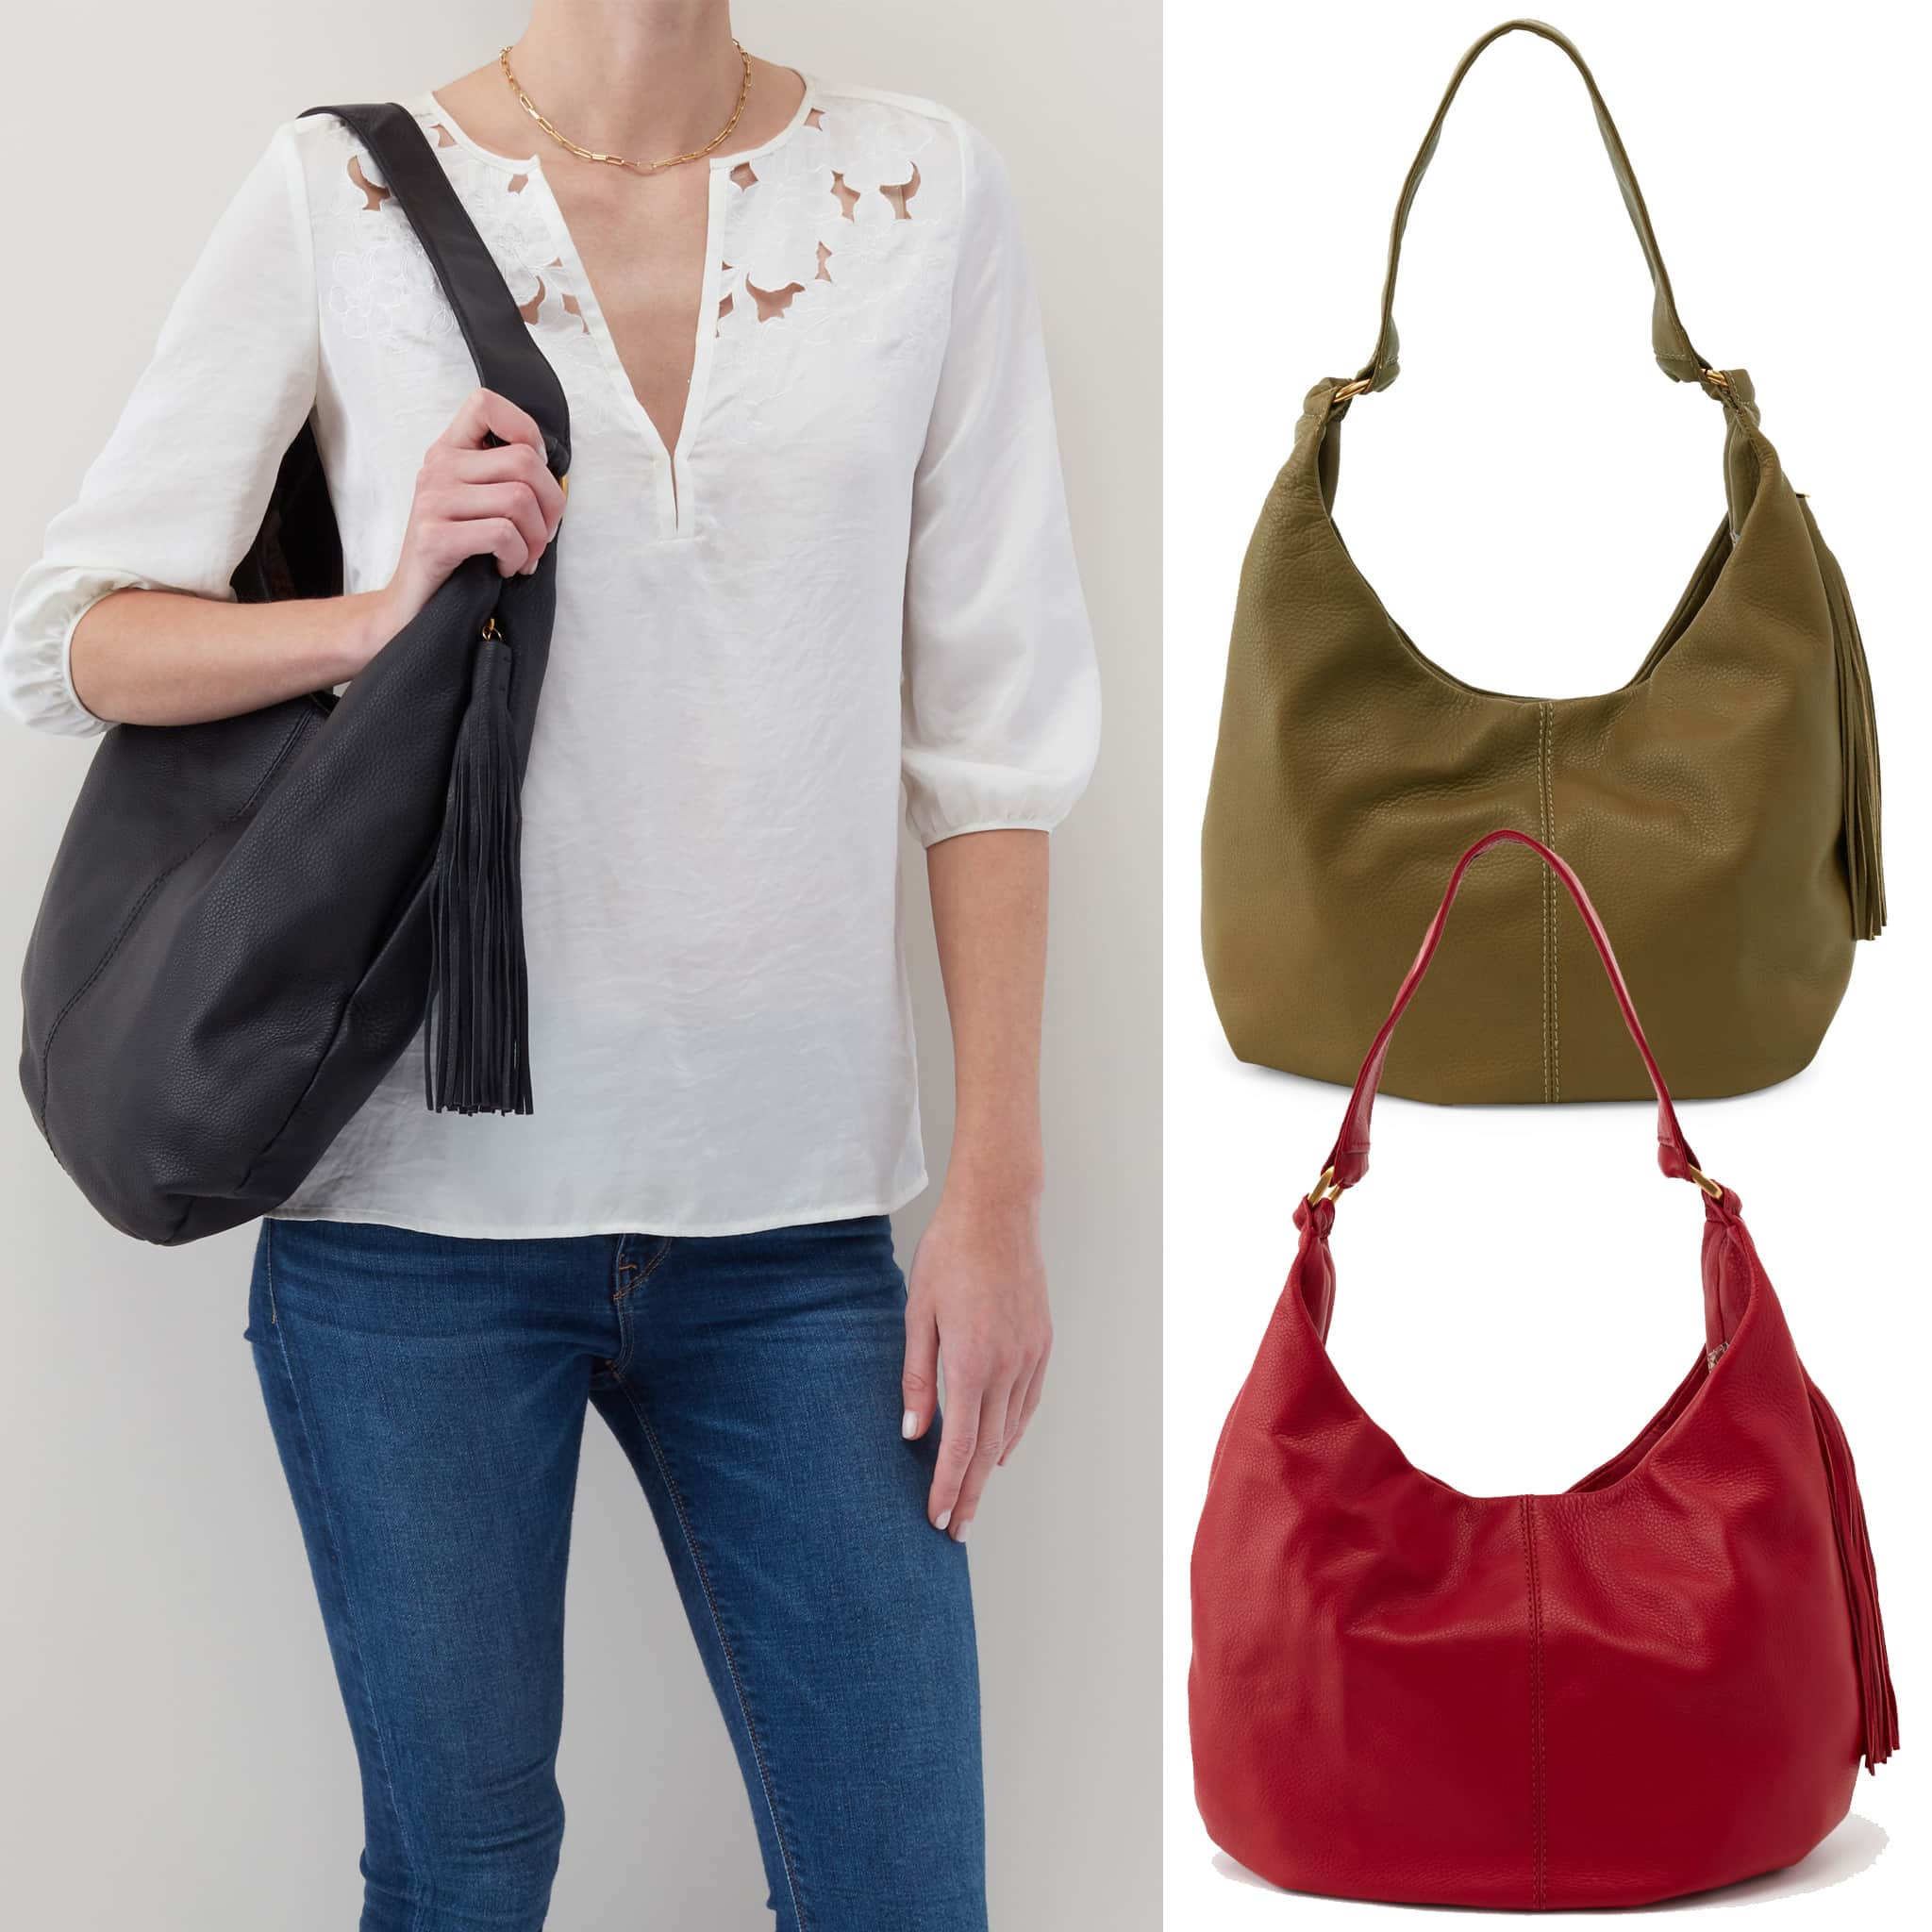 Hobo's Gardner hobo bag goes with anything and offers a large interior compartment